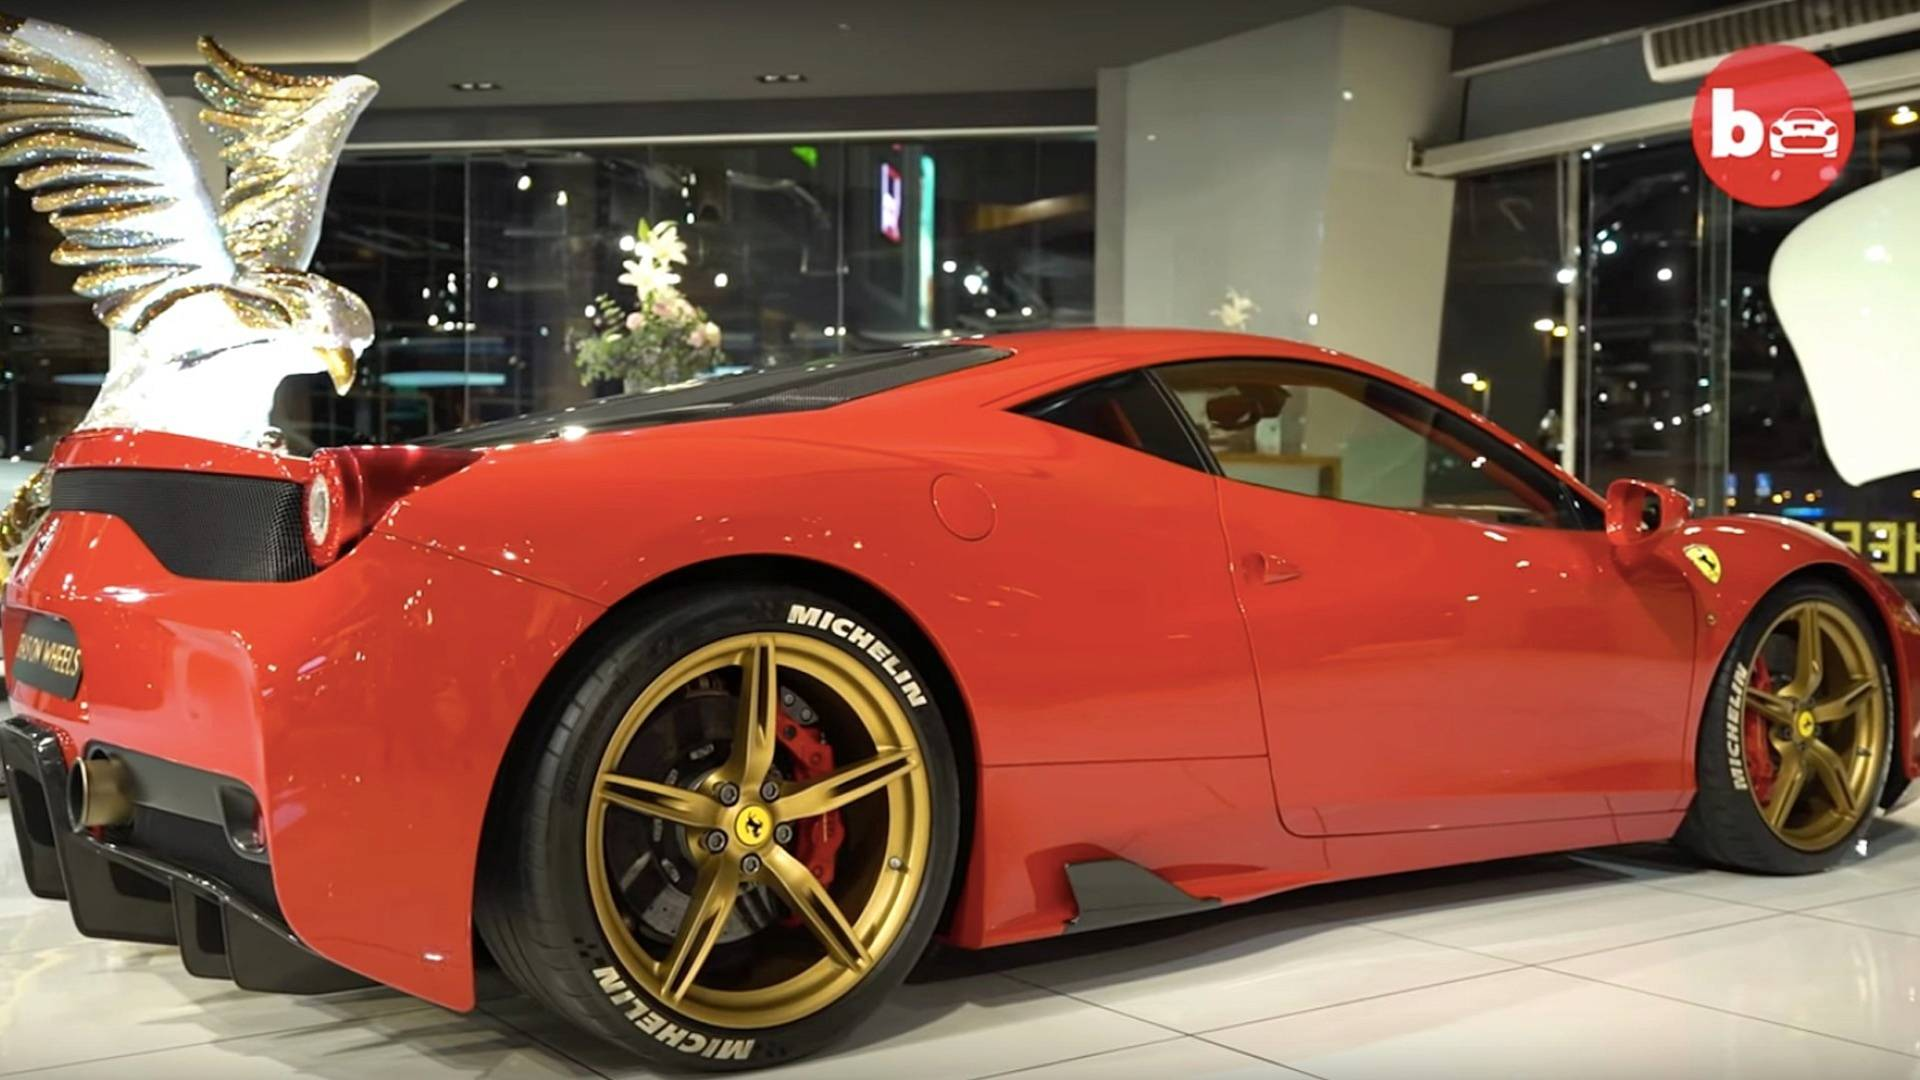 High End Cars >> 45 Million Worth Of High End Cars In Dubai Motor1 Com Photos